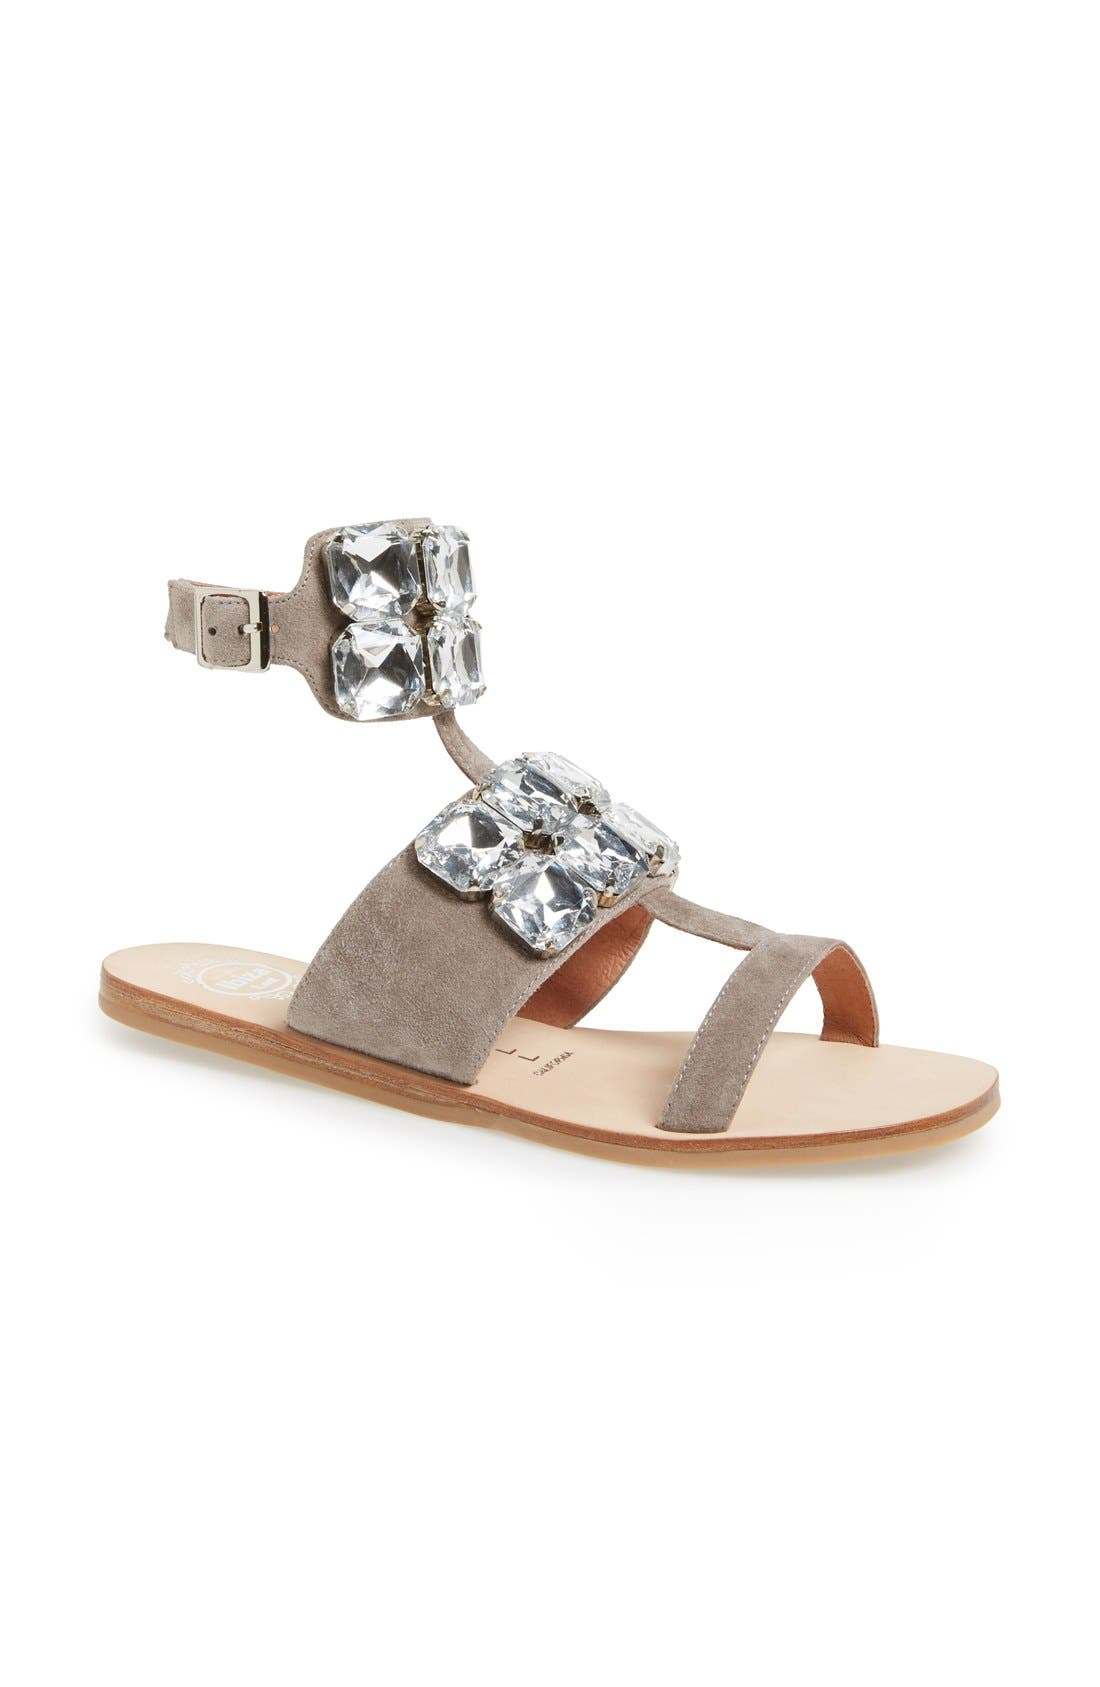 JEFFREY CAMPBELL, 'Sabita' Jeweled Suede Ankle Strap Sandal, Main thumbnail 1, color, 060